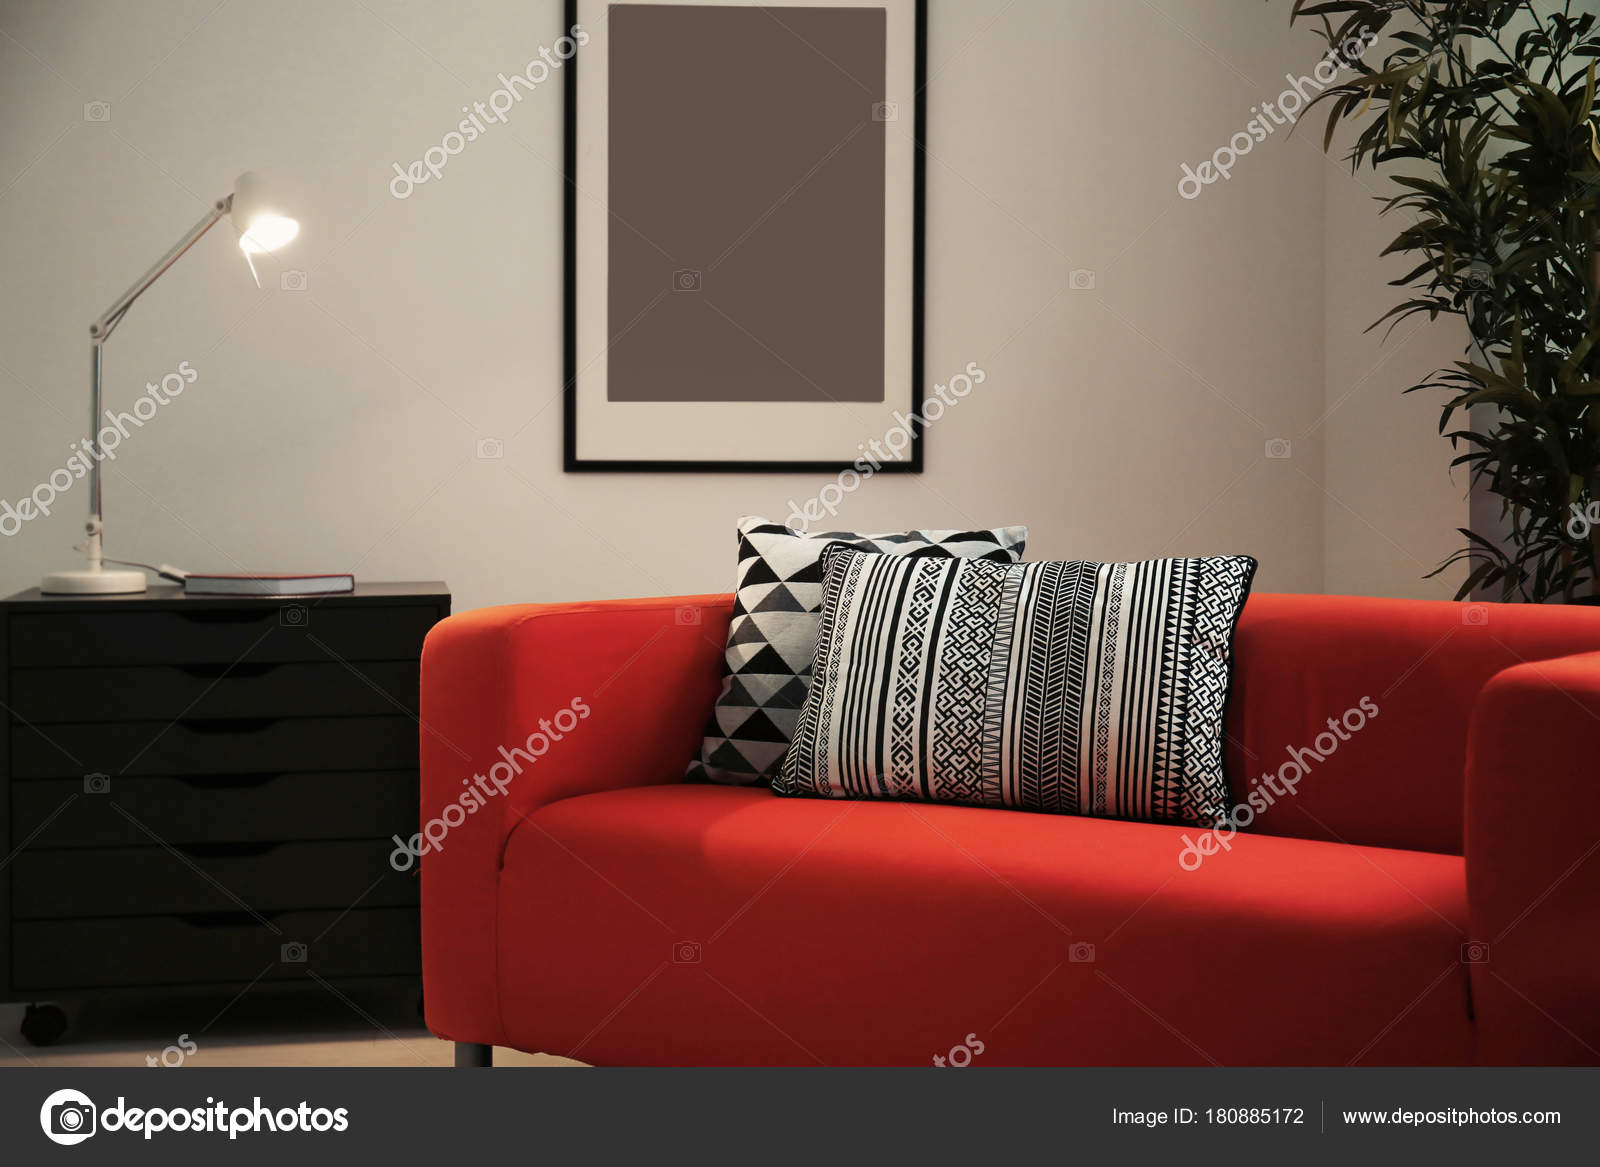 Cuscini Per Divano Rosso.Comfortable Red Sofa Pillows Room Stock Photo C Belchonock